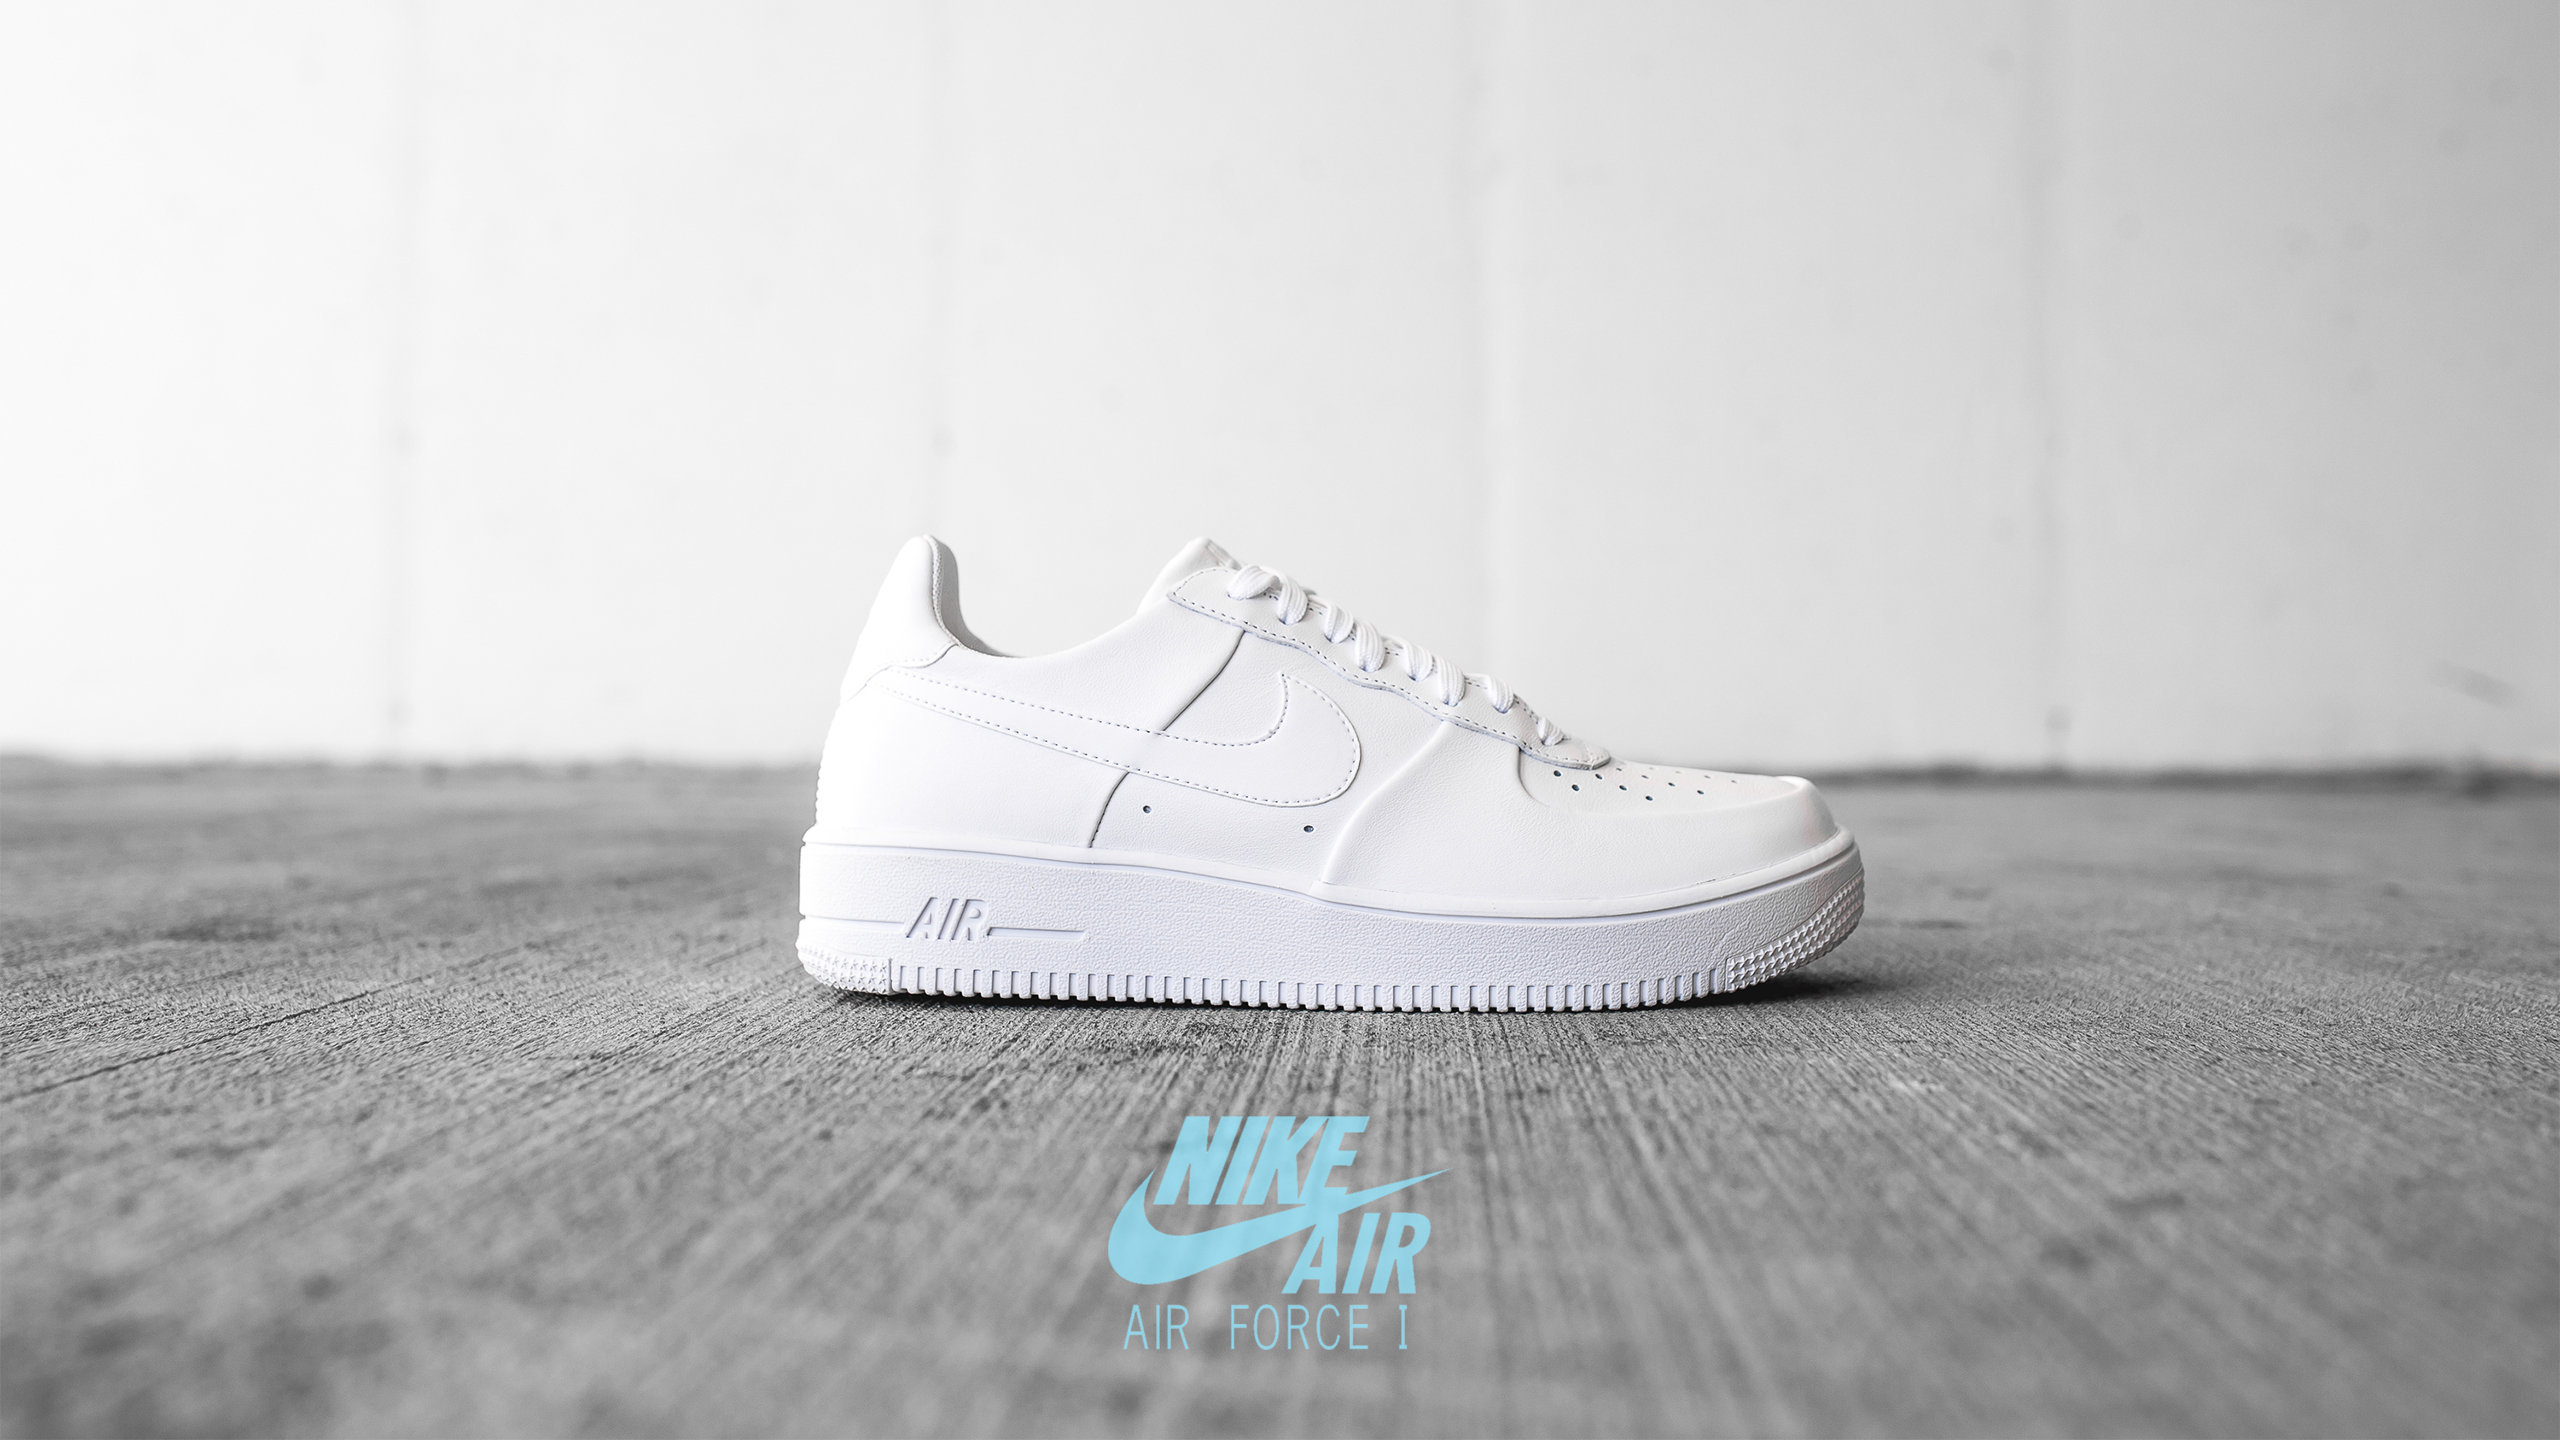 Nike Air Force 1 Shoes Nike Air Force 1 Shoes Wallpaper - CopEmLegit